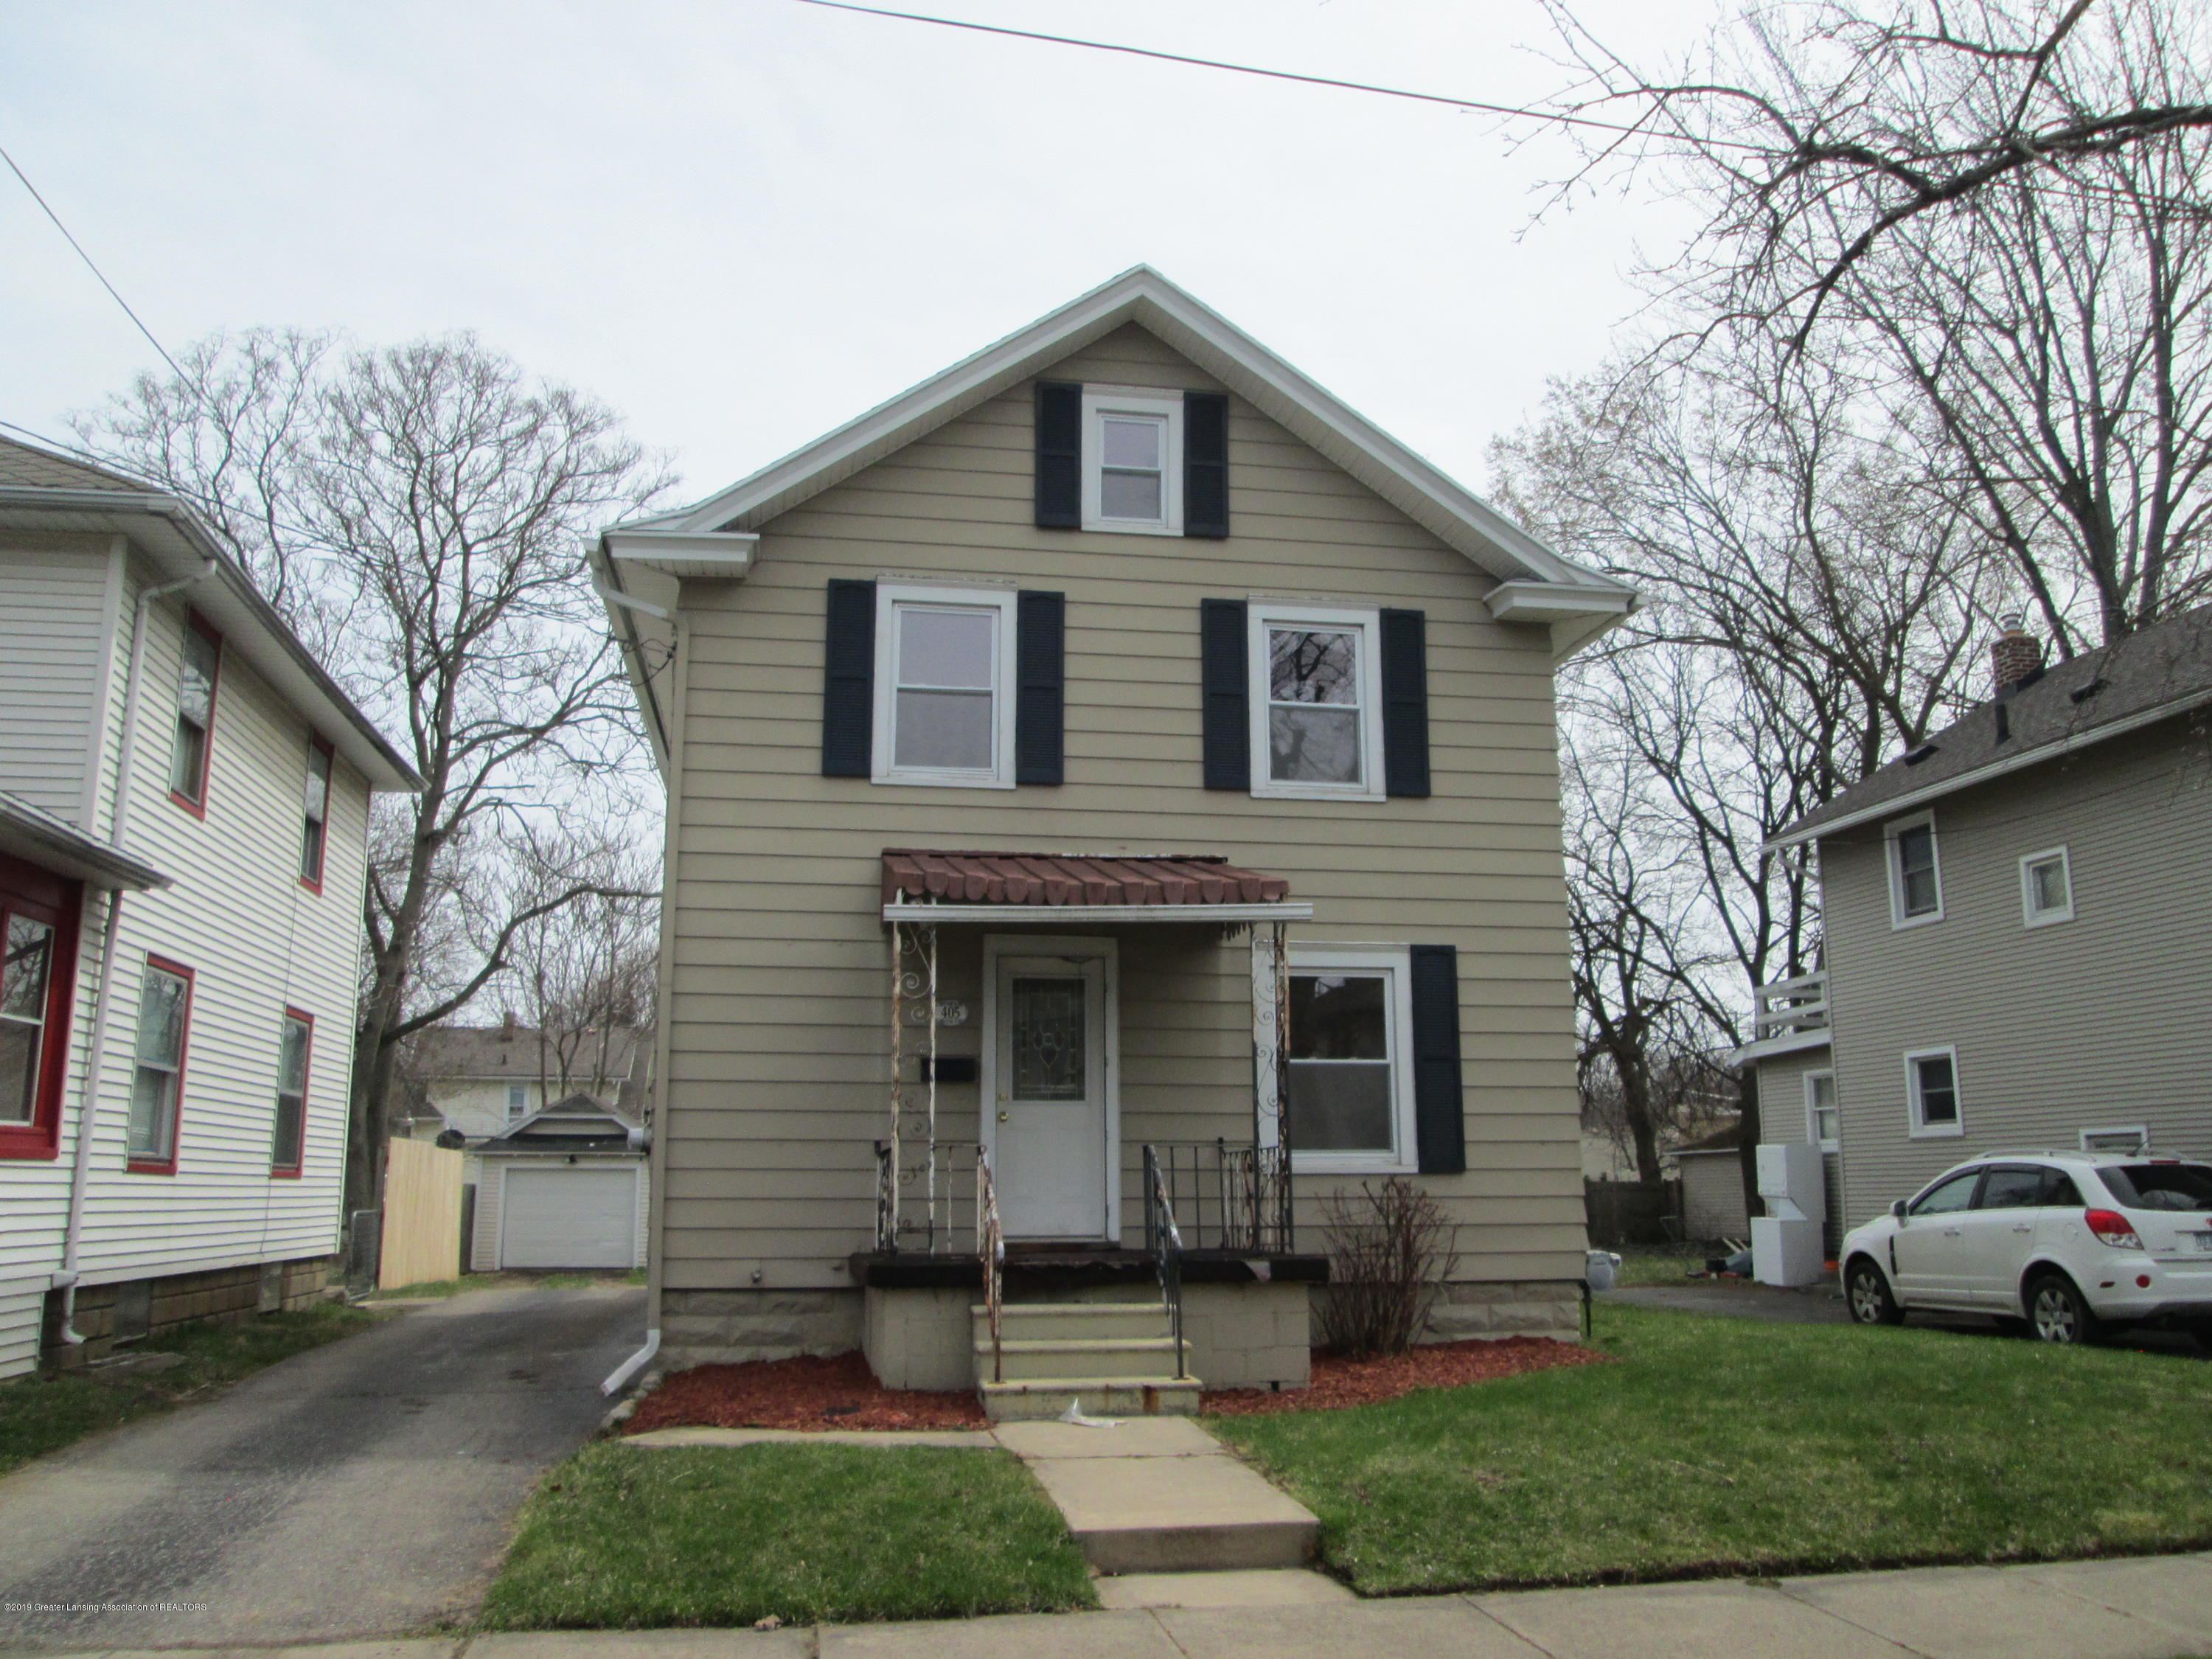 405 S Grinnell St - FRONT - 1